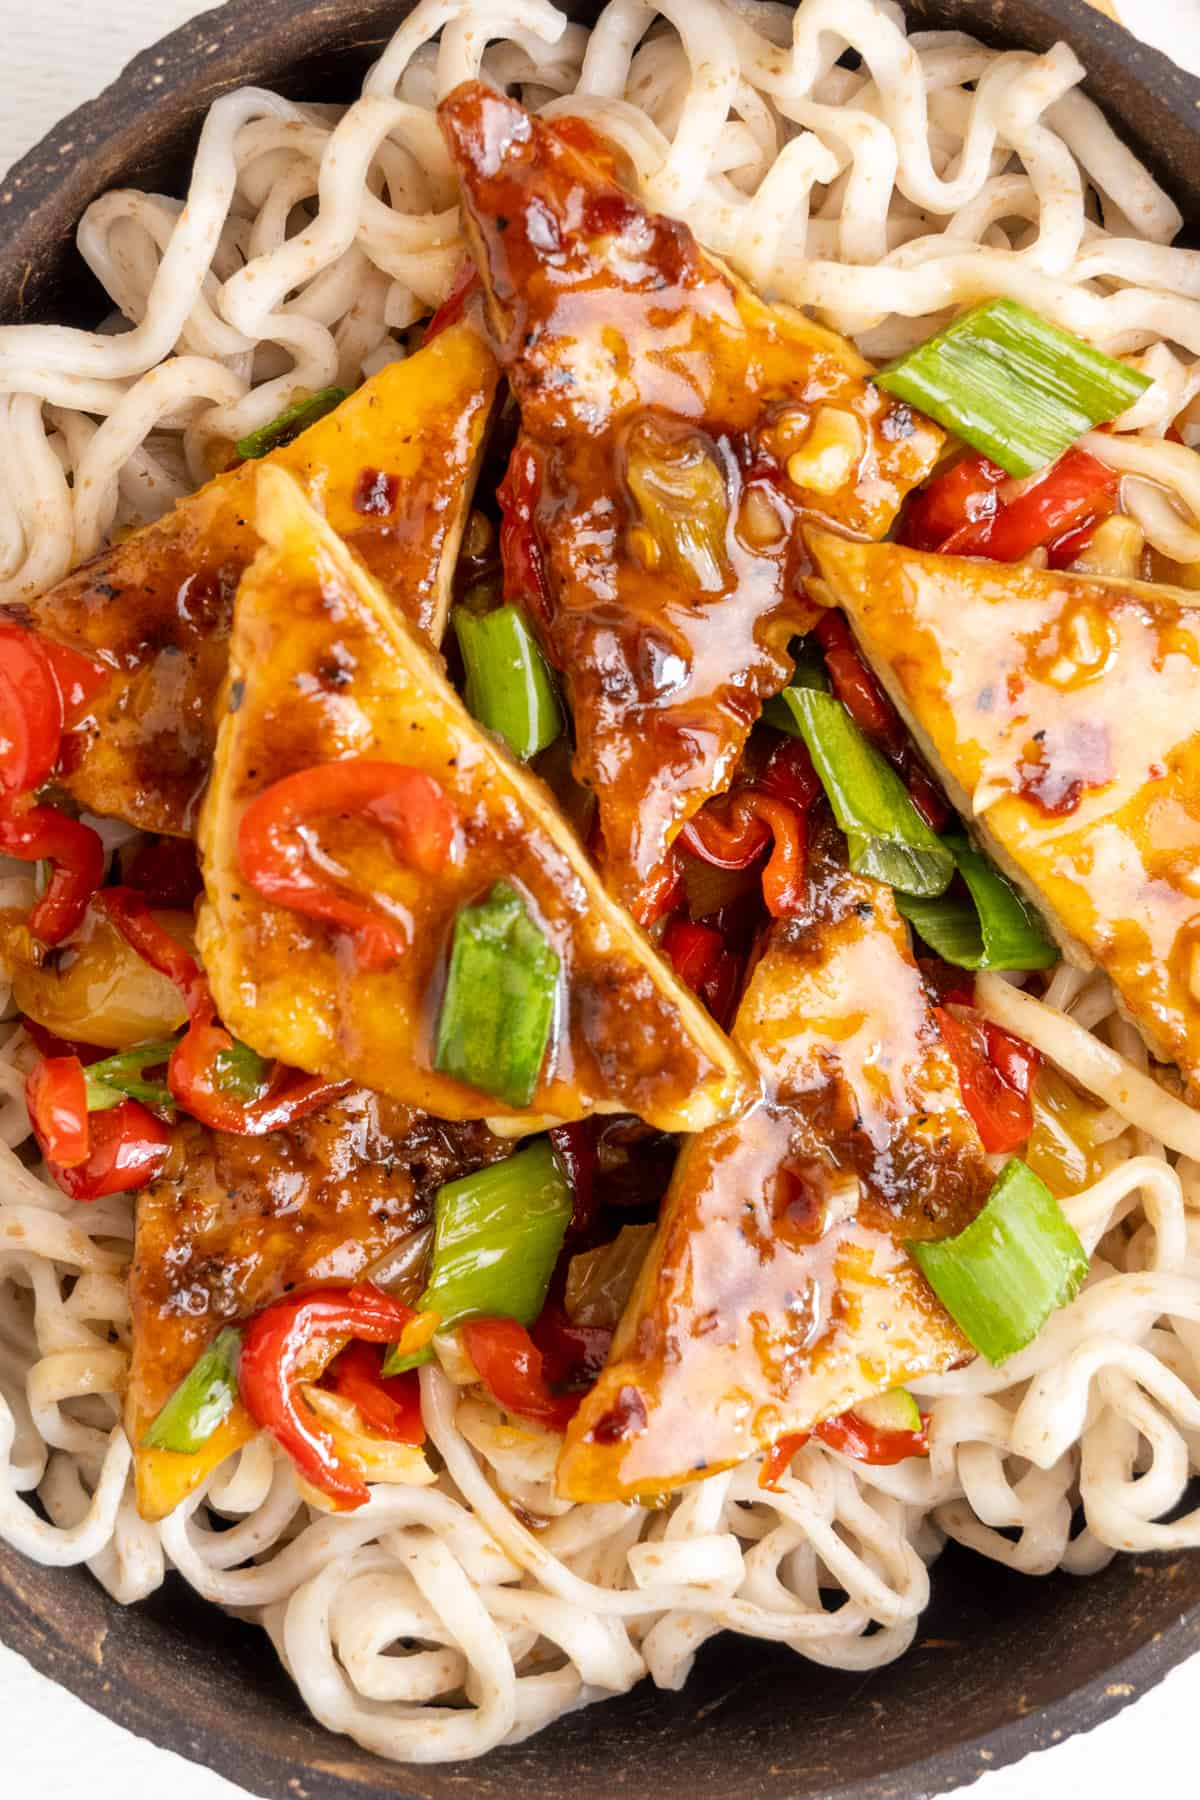 Triangular pieces of fried tofu covered in a sticky and glossy sauce and thinly sliced red pepper and spring onion greens on a bed of noodles.